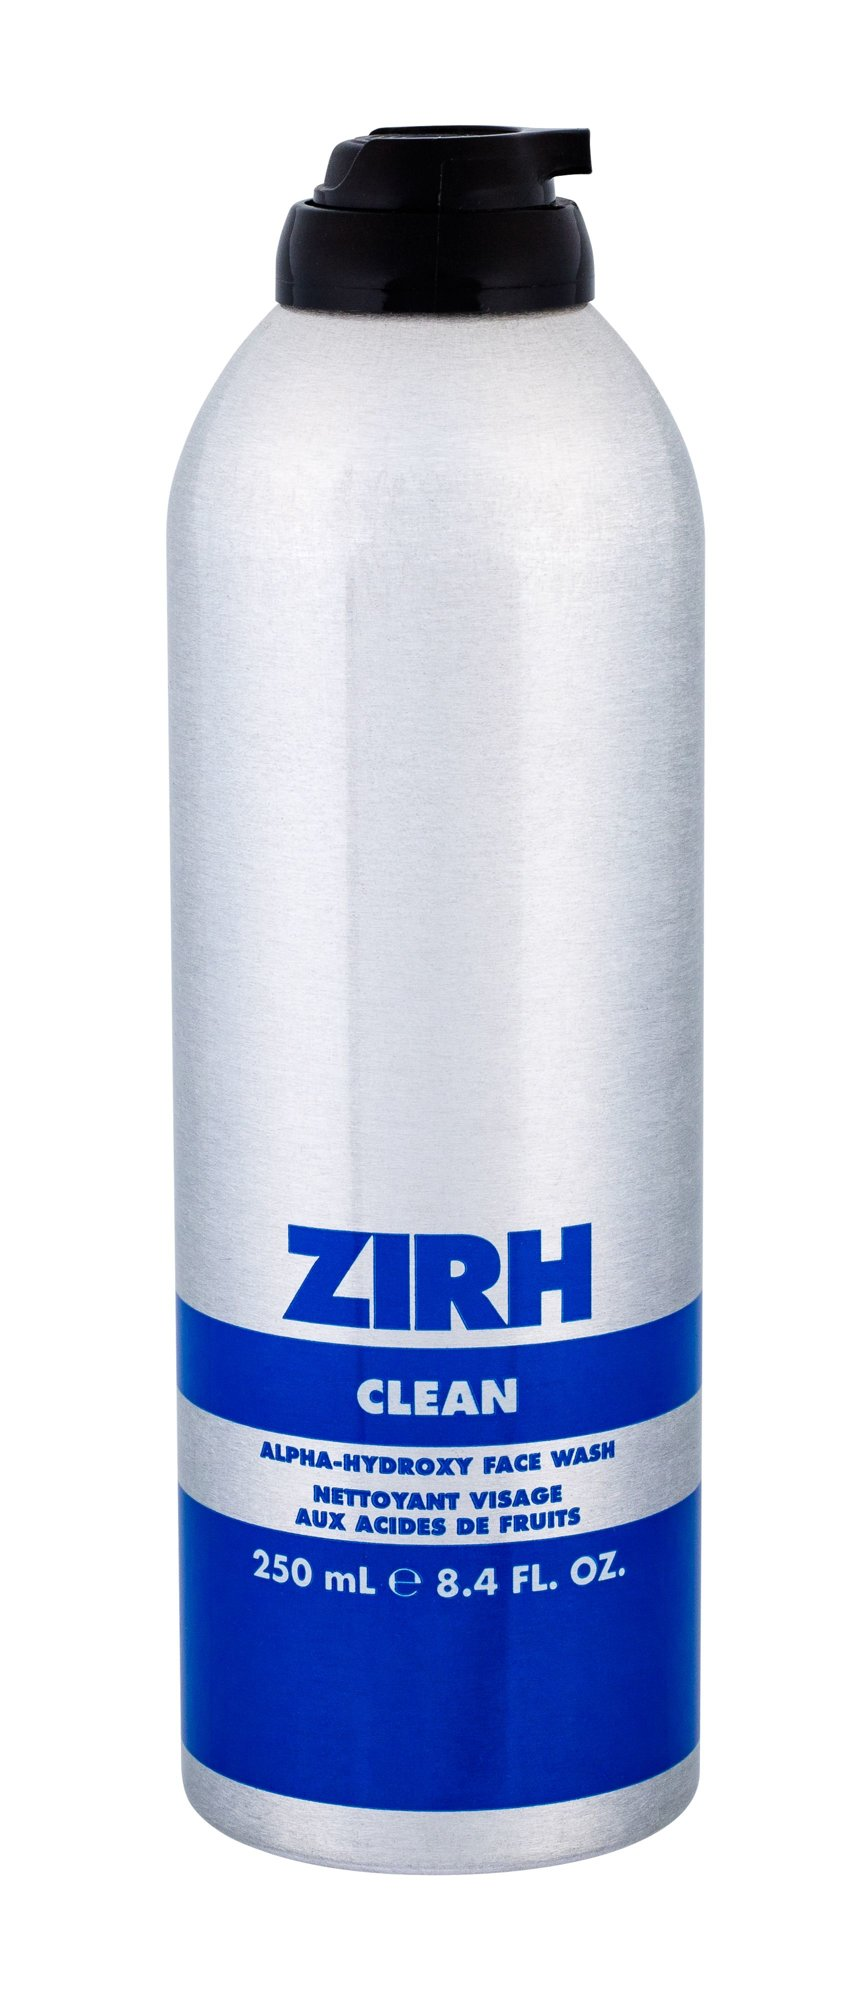 ZIRH Clean Cleansing Gel 250ml  Alpha-Hydroxy Face Wash